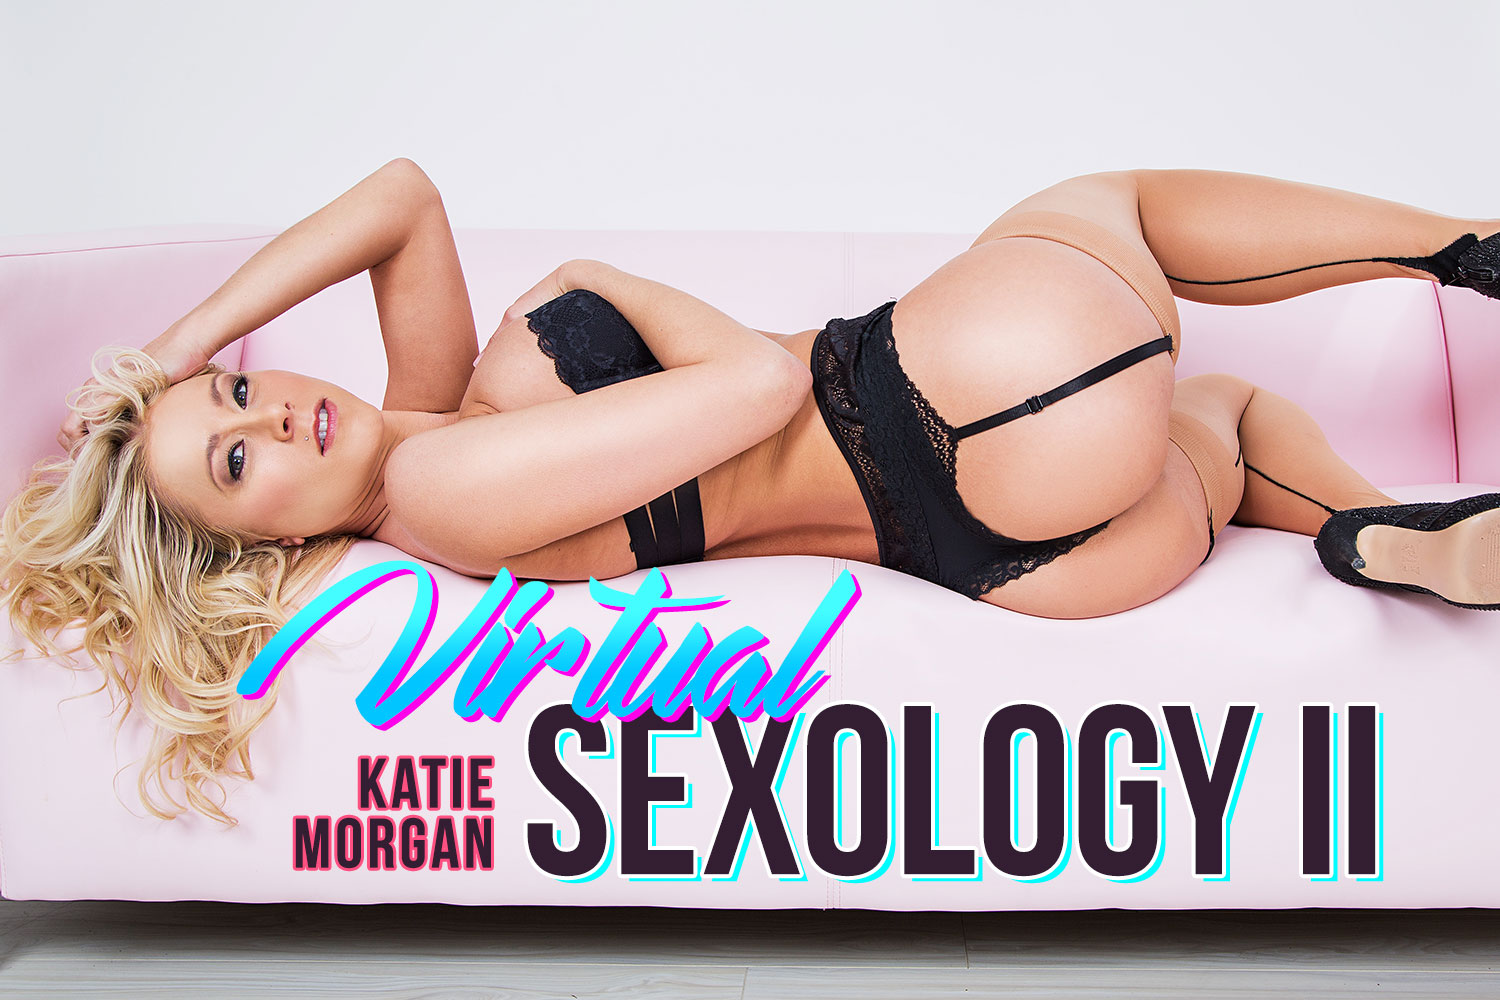 Virtual Sexology II: Female POV VR Porn Video